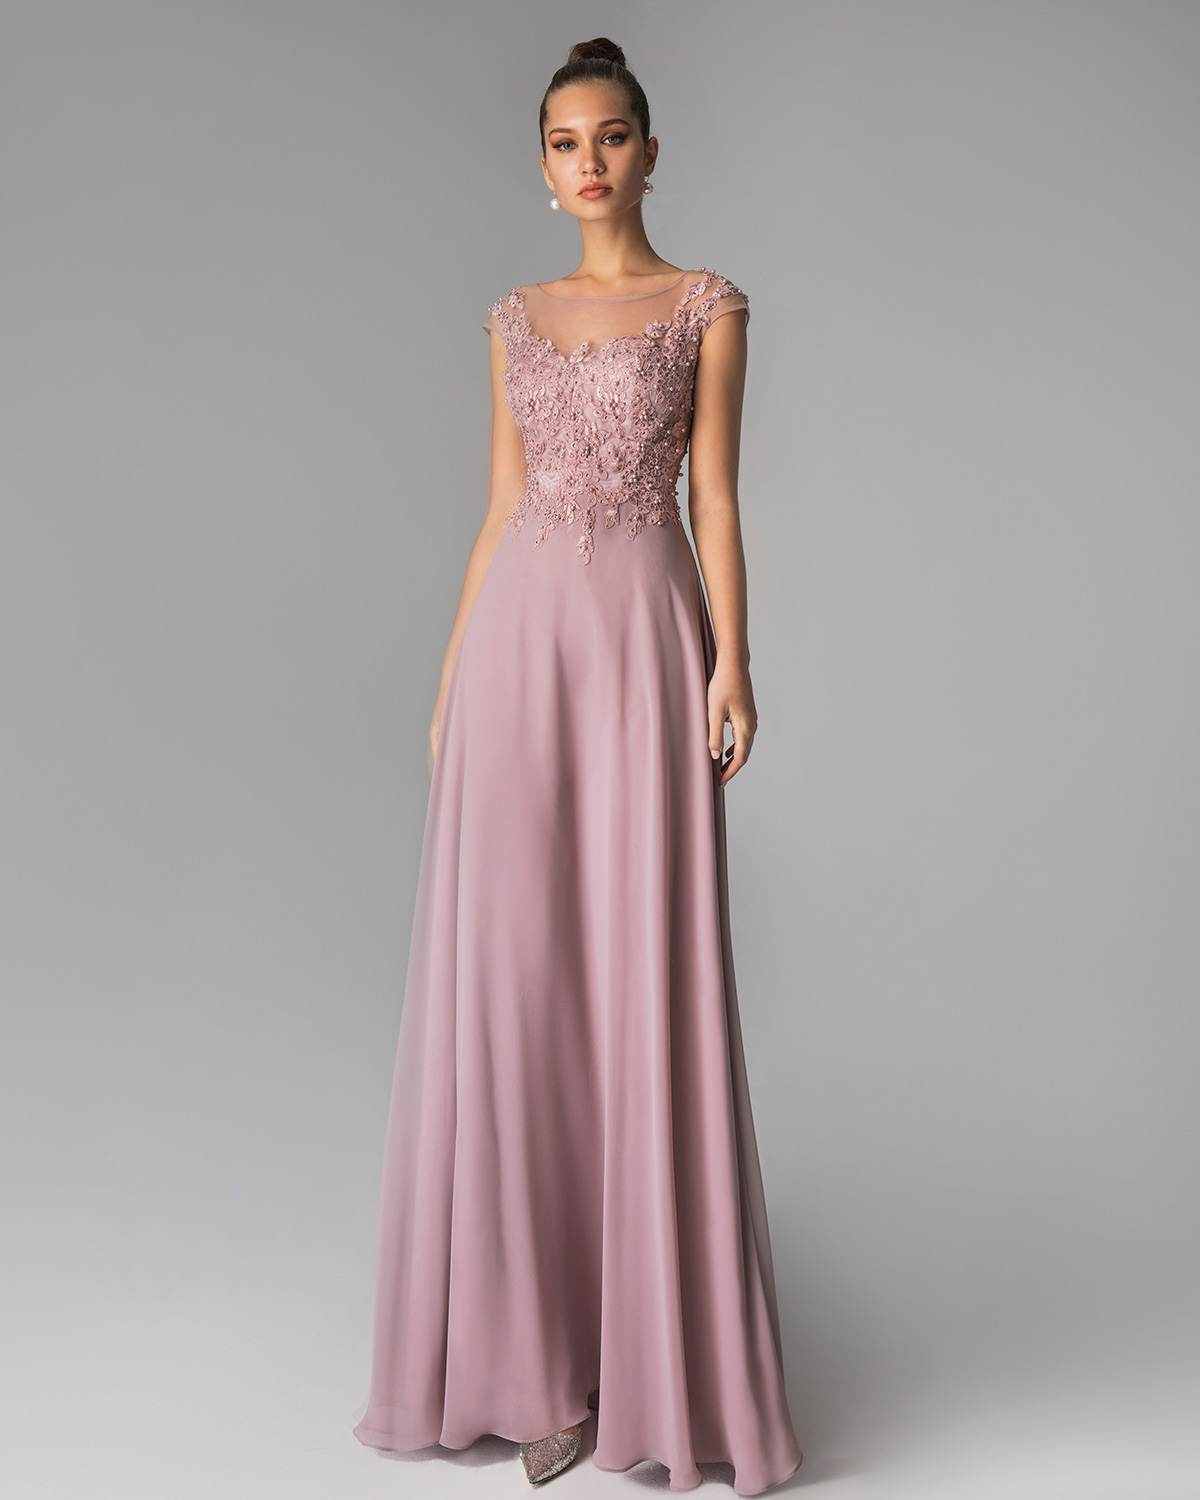 Classic Dresses / Long evening dress with lace top and chiffon skirt